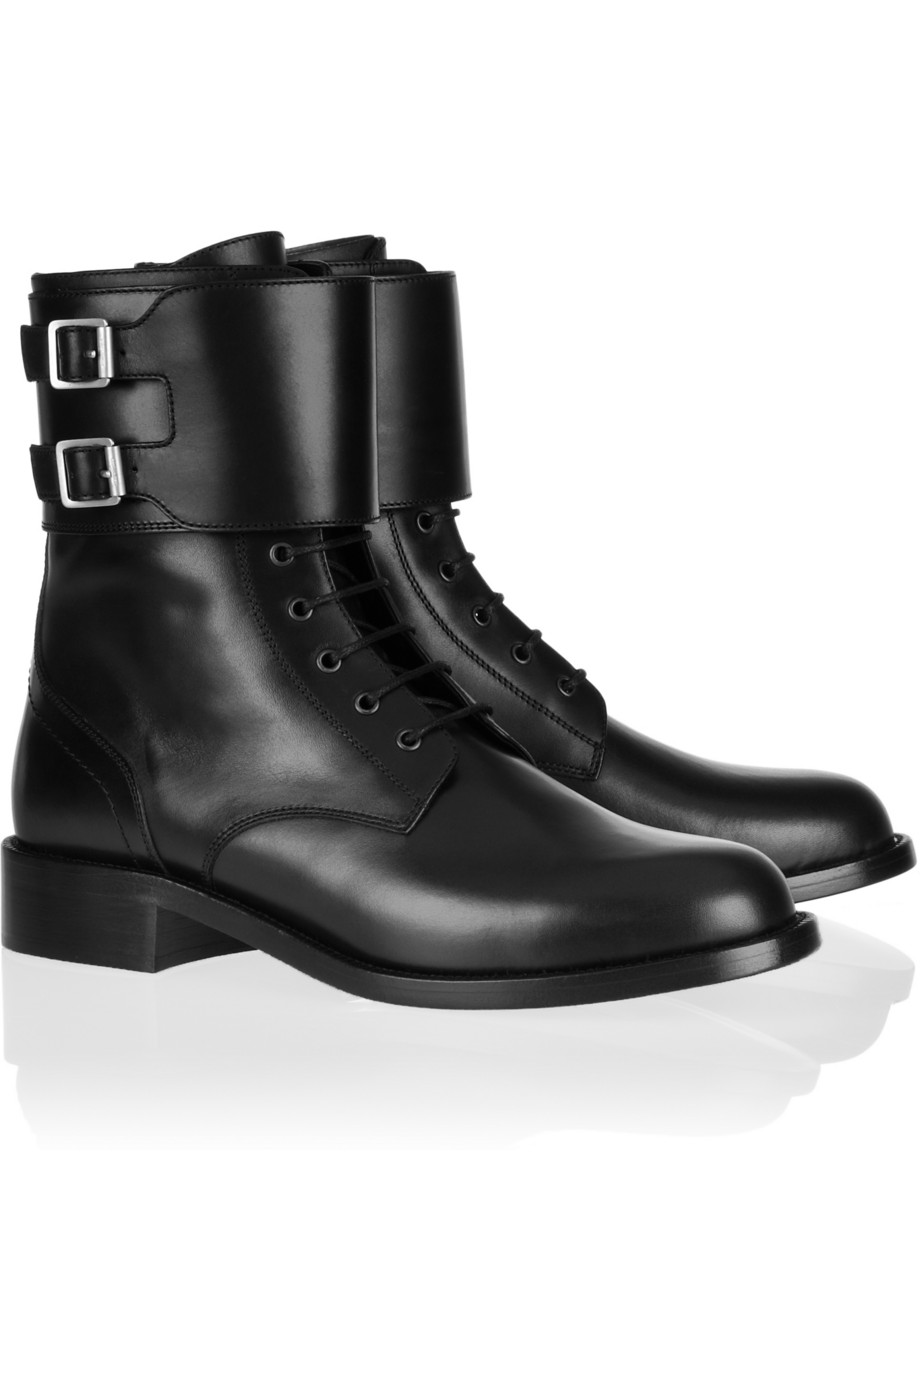 Lanvin Black Leather Low Army Boots